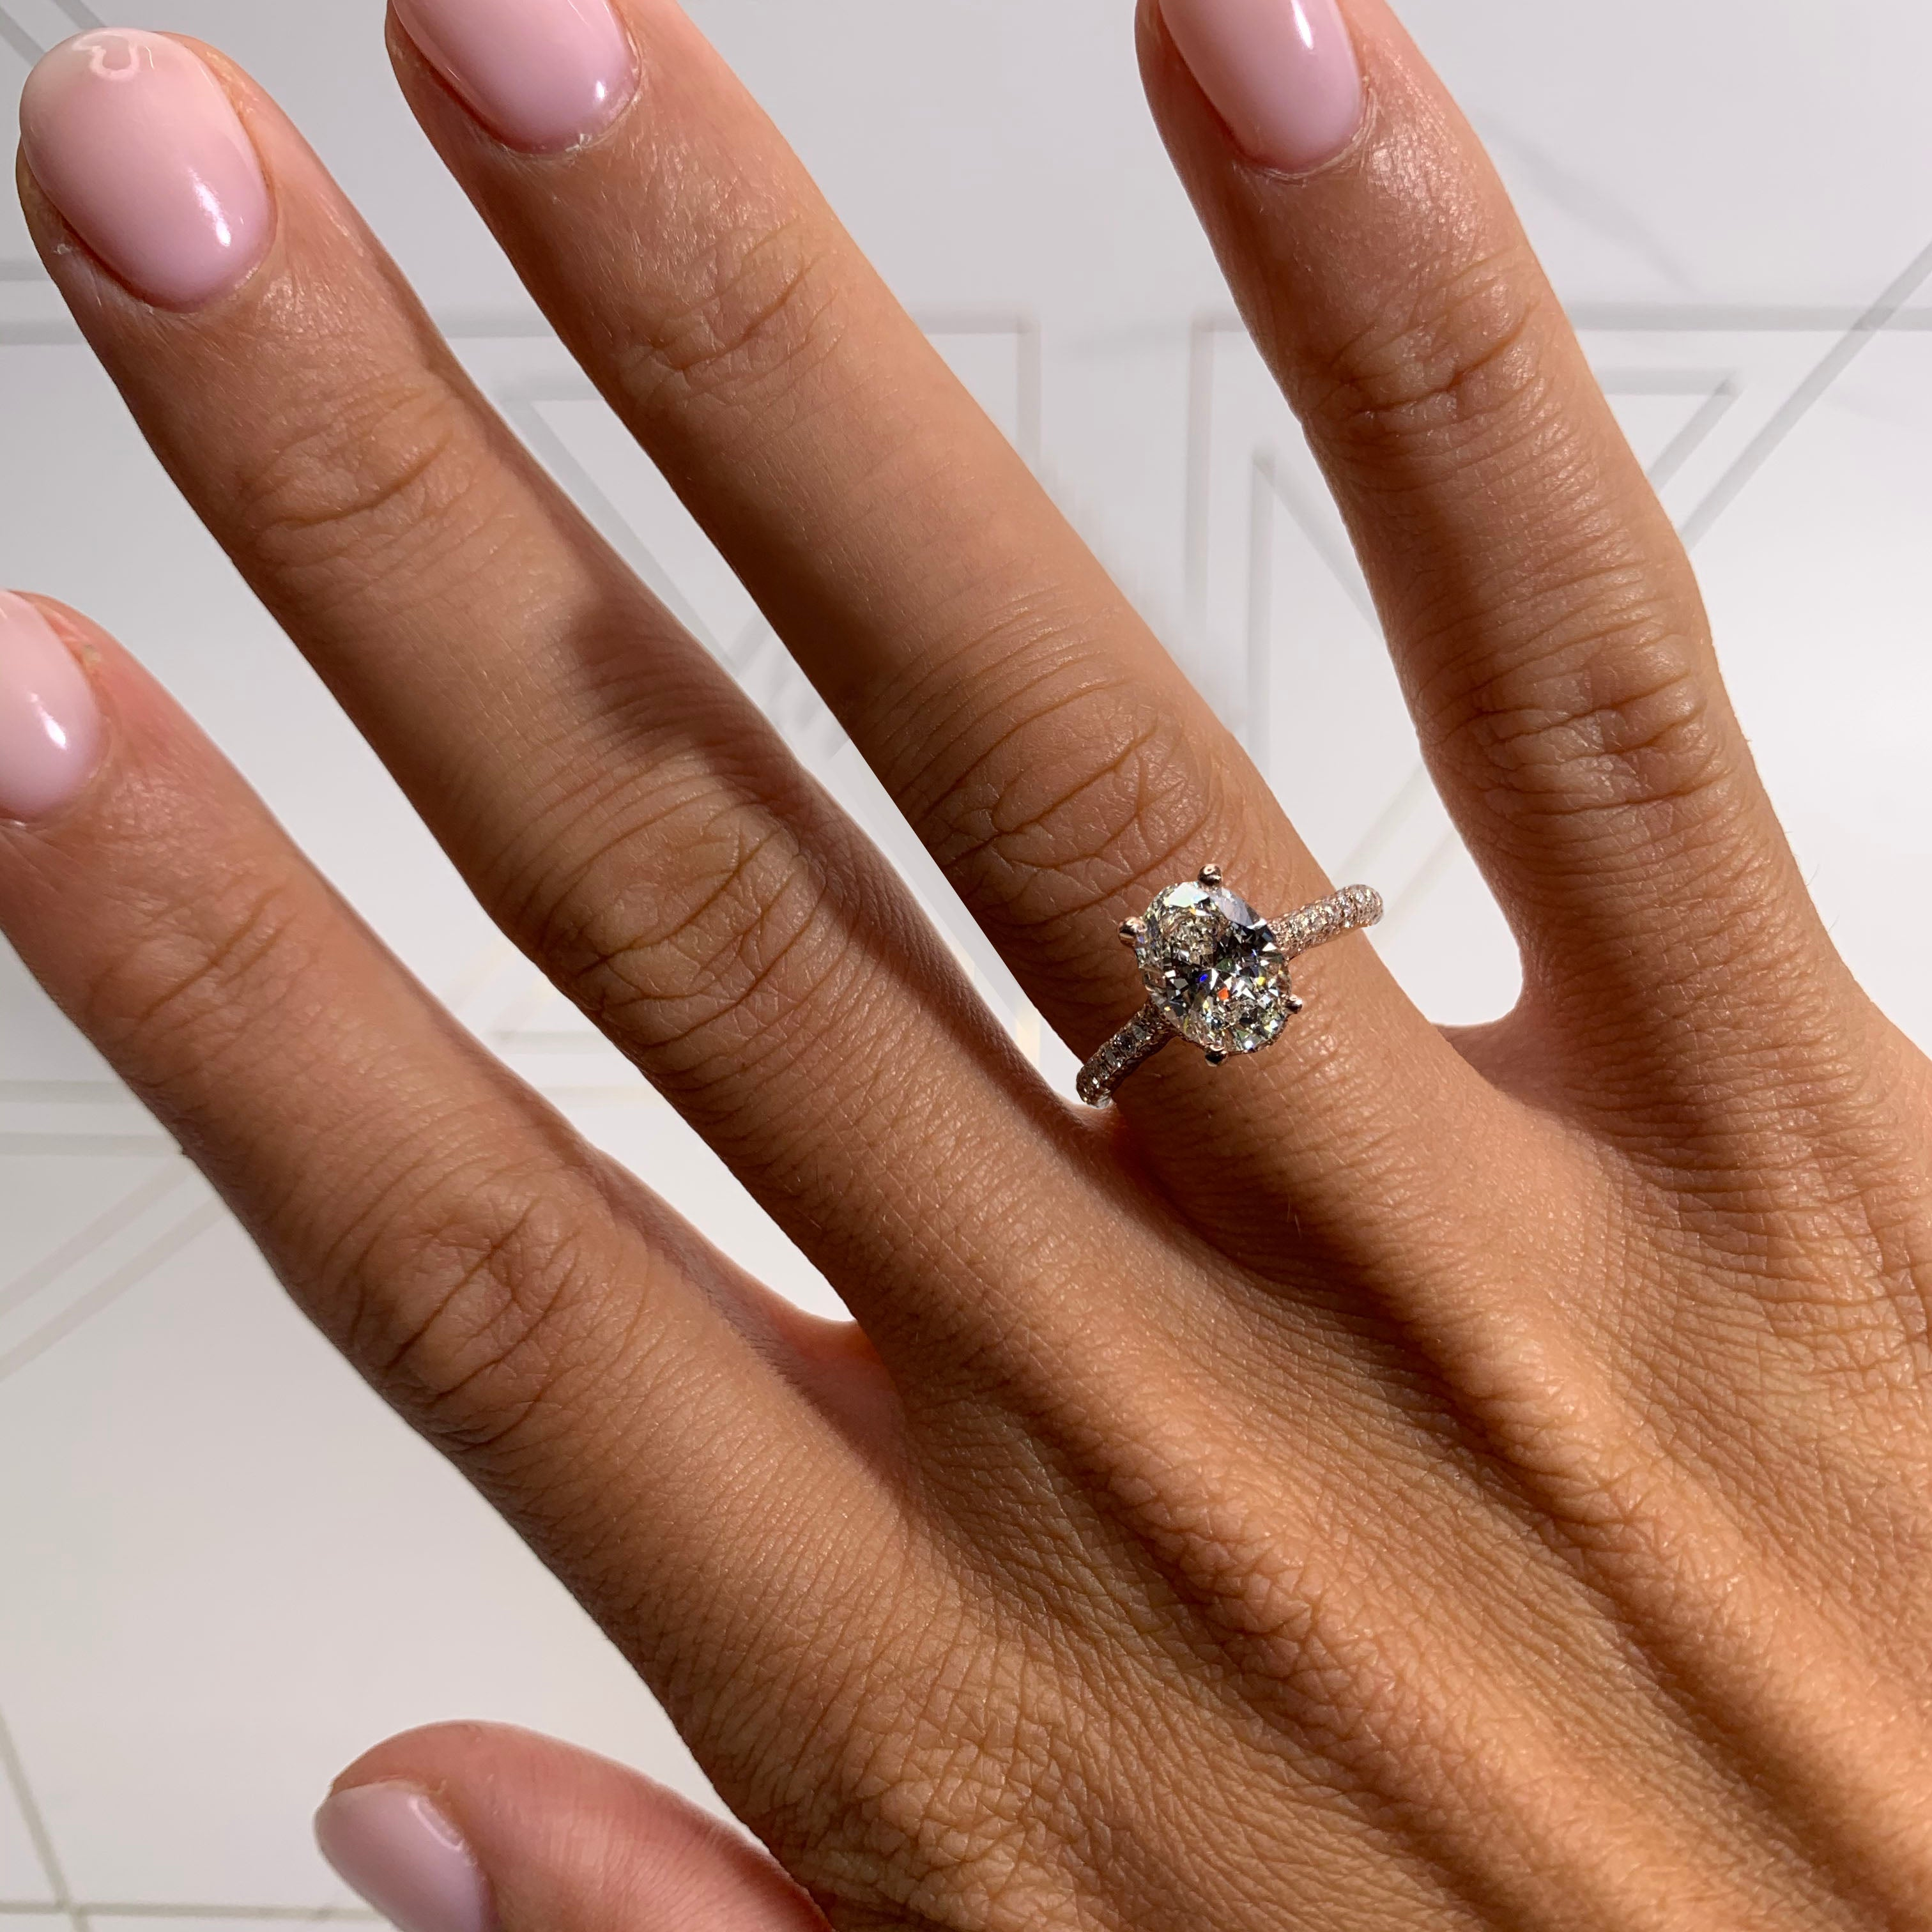 The Rebecca Engagement Ring - 1.8 CARAT HIDDEN HALO OVAL ENGAGEMENT RING - 18K ROSE GOLD #J99245